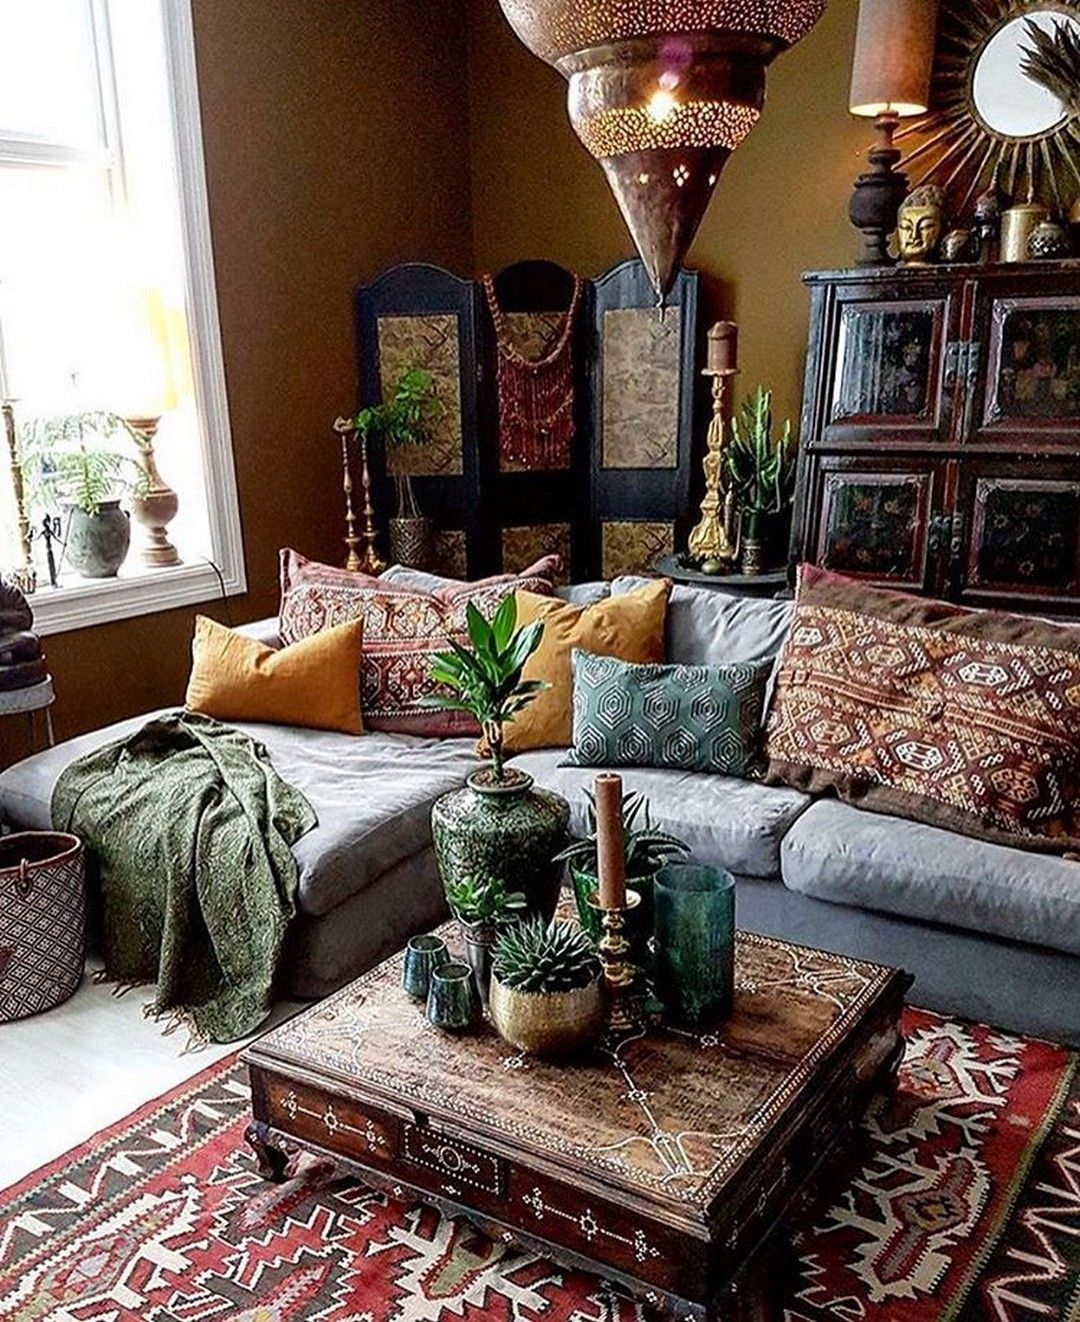 Home Interior Design Ideas Diy: 18 DIY Indoor Bohemian Decorating Ideas